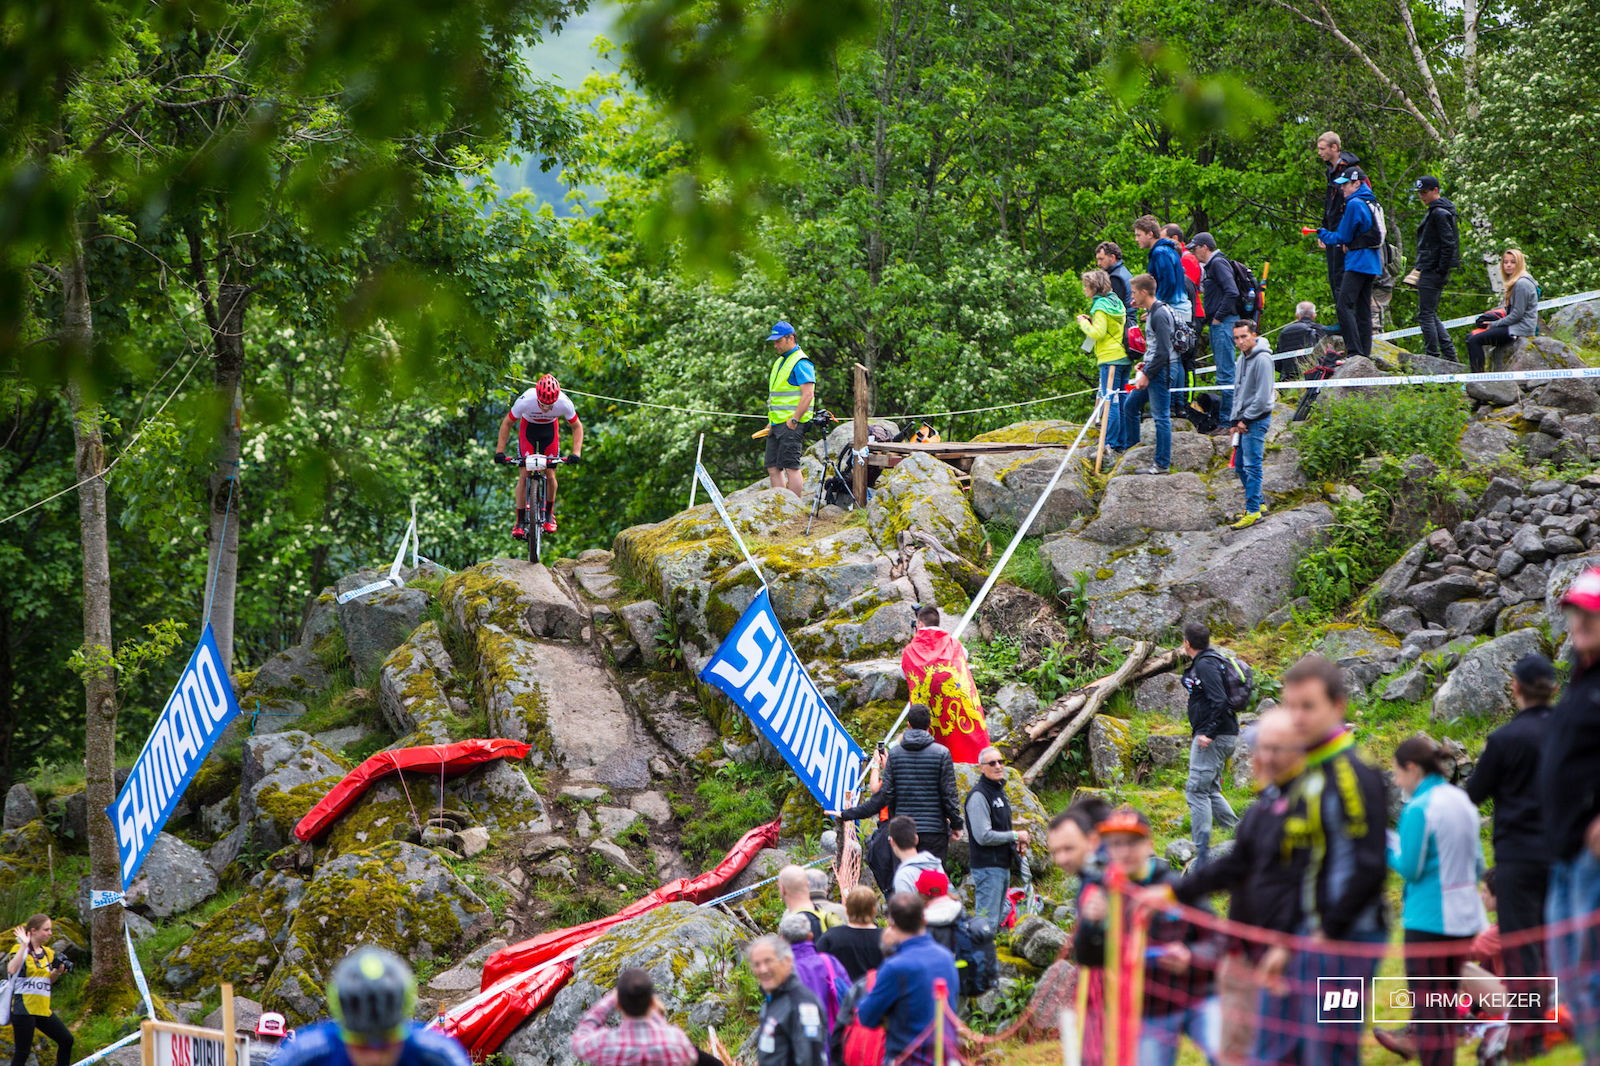 Sam Gaze worked hard to get into third. He remains in the lead of the 2016 UCI MTB World Cup.